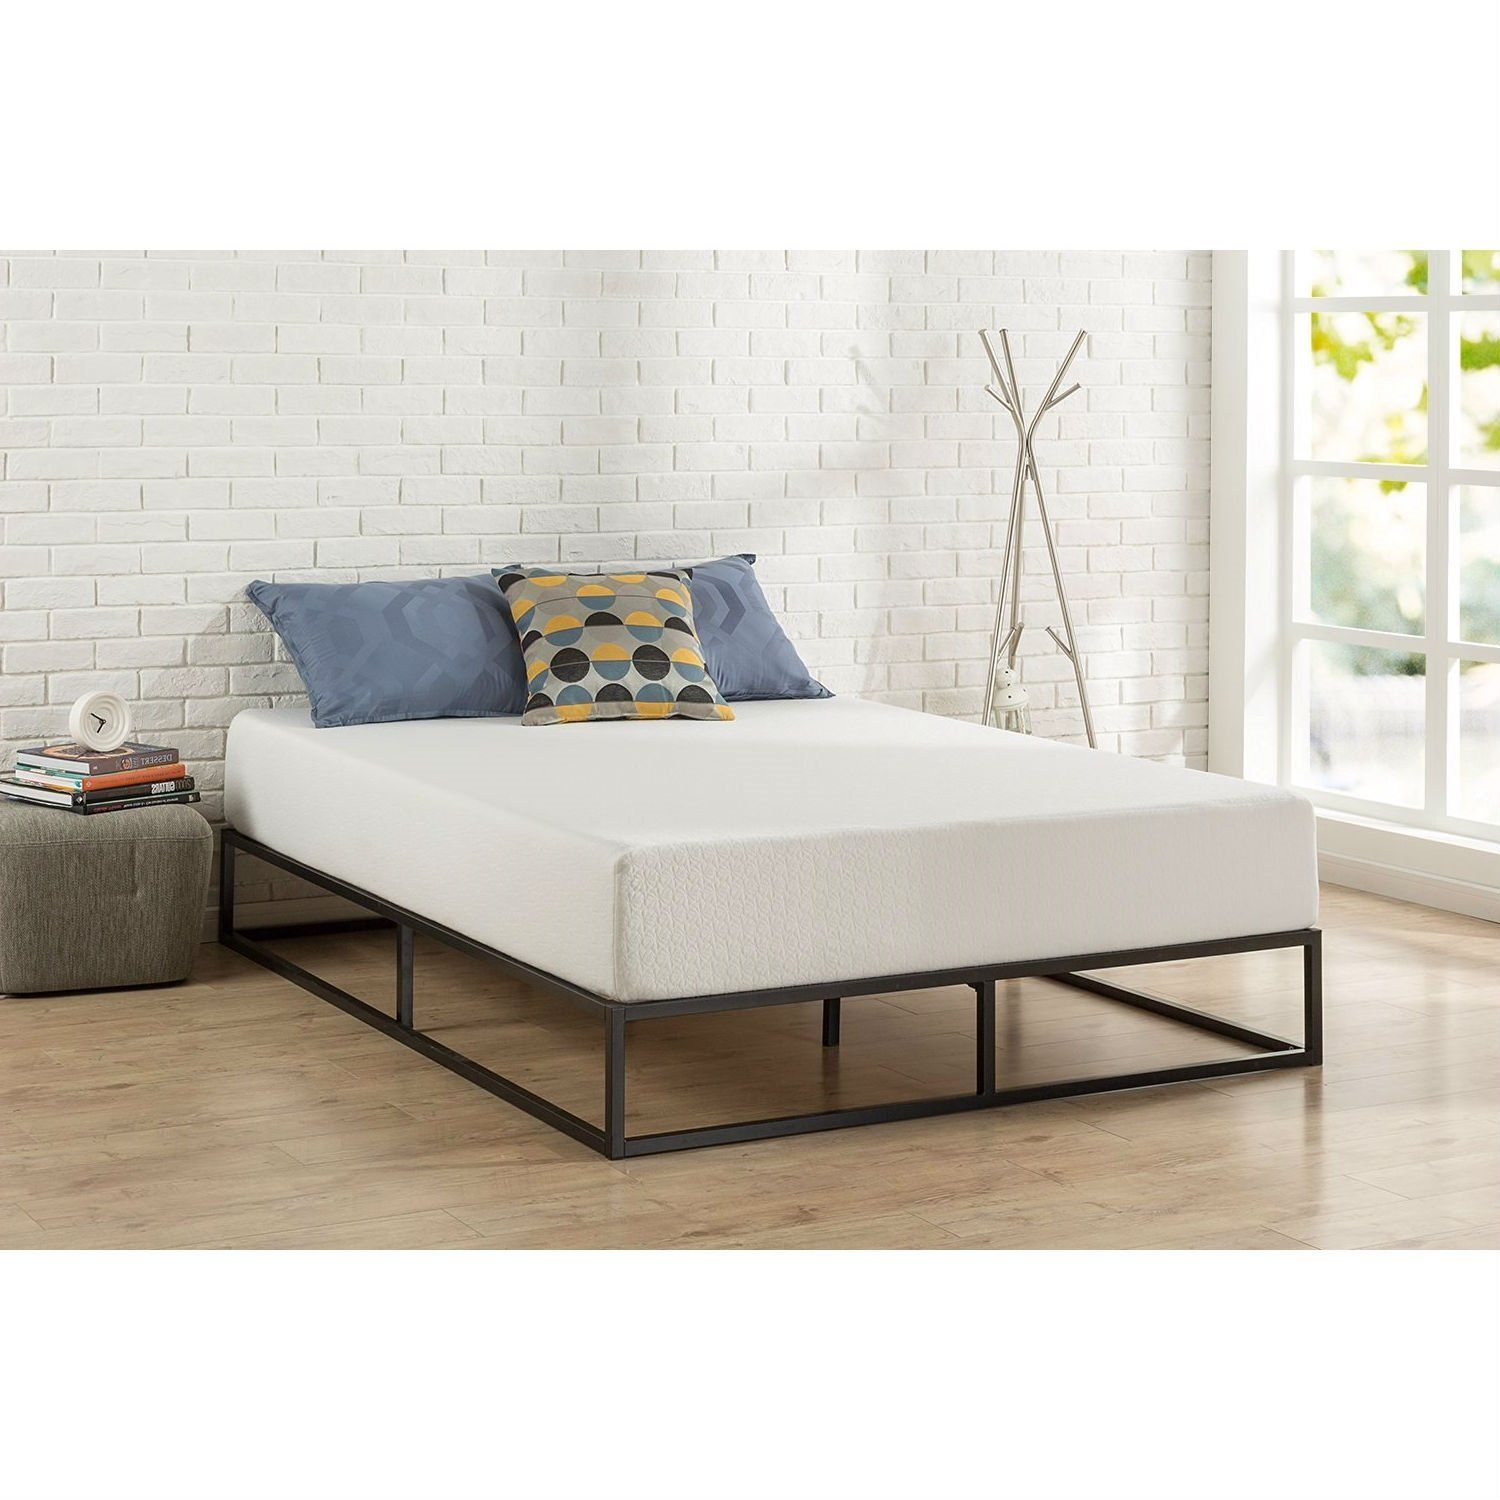 Twin Size 10 Inch Low Profile Modern Metal Platform Bed Frame With Wooden Slats Metal Platform Bed Full Bed Frame Platform Bed Frame